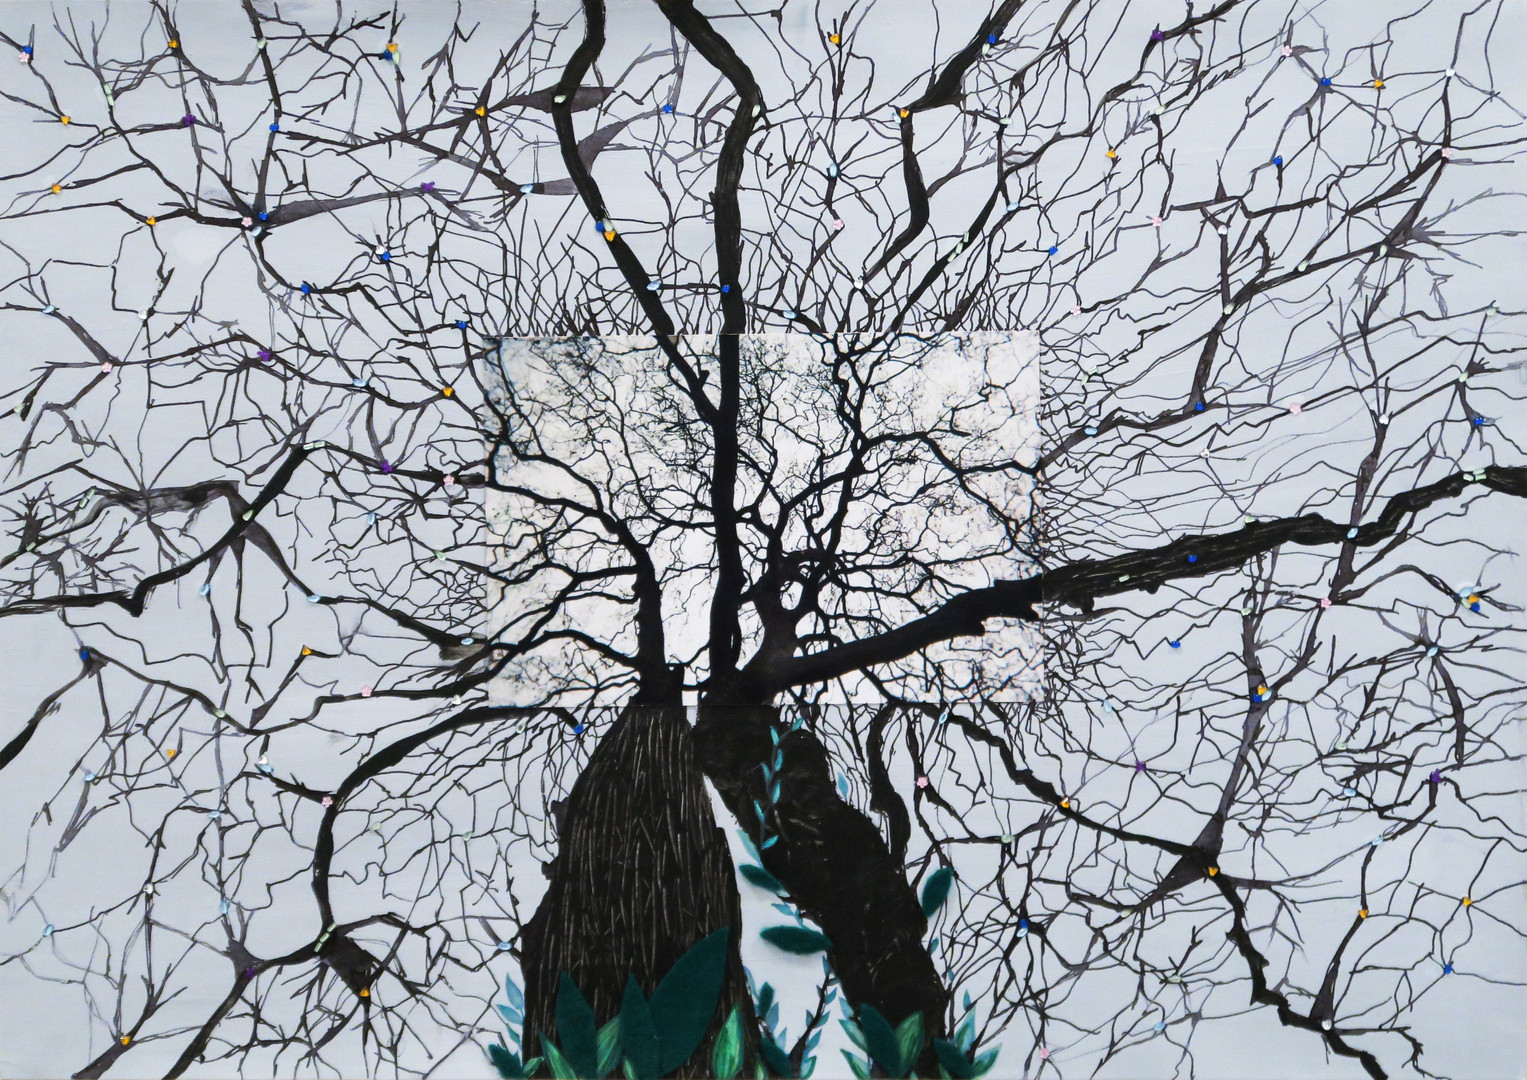 Tree of Hope_  Collage - Photographie:35mm - Encre de chine